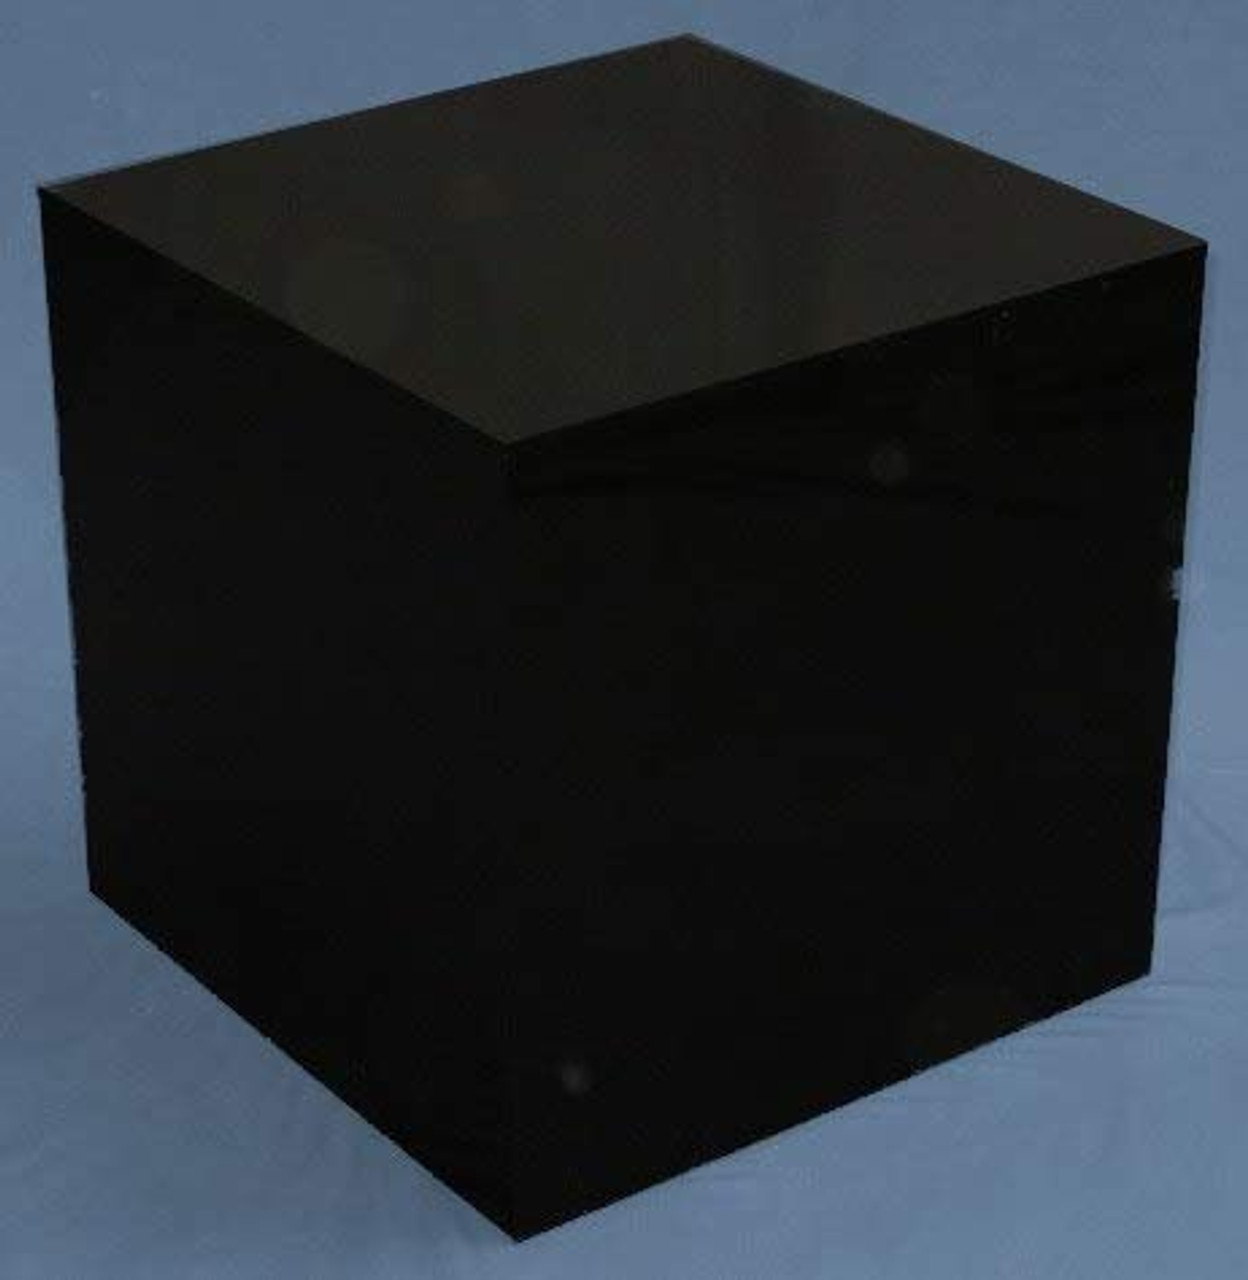 Clear Stands Black Large Square Acrylic Display Cube, 14 Inch